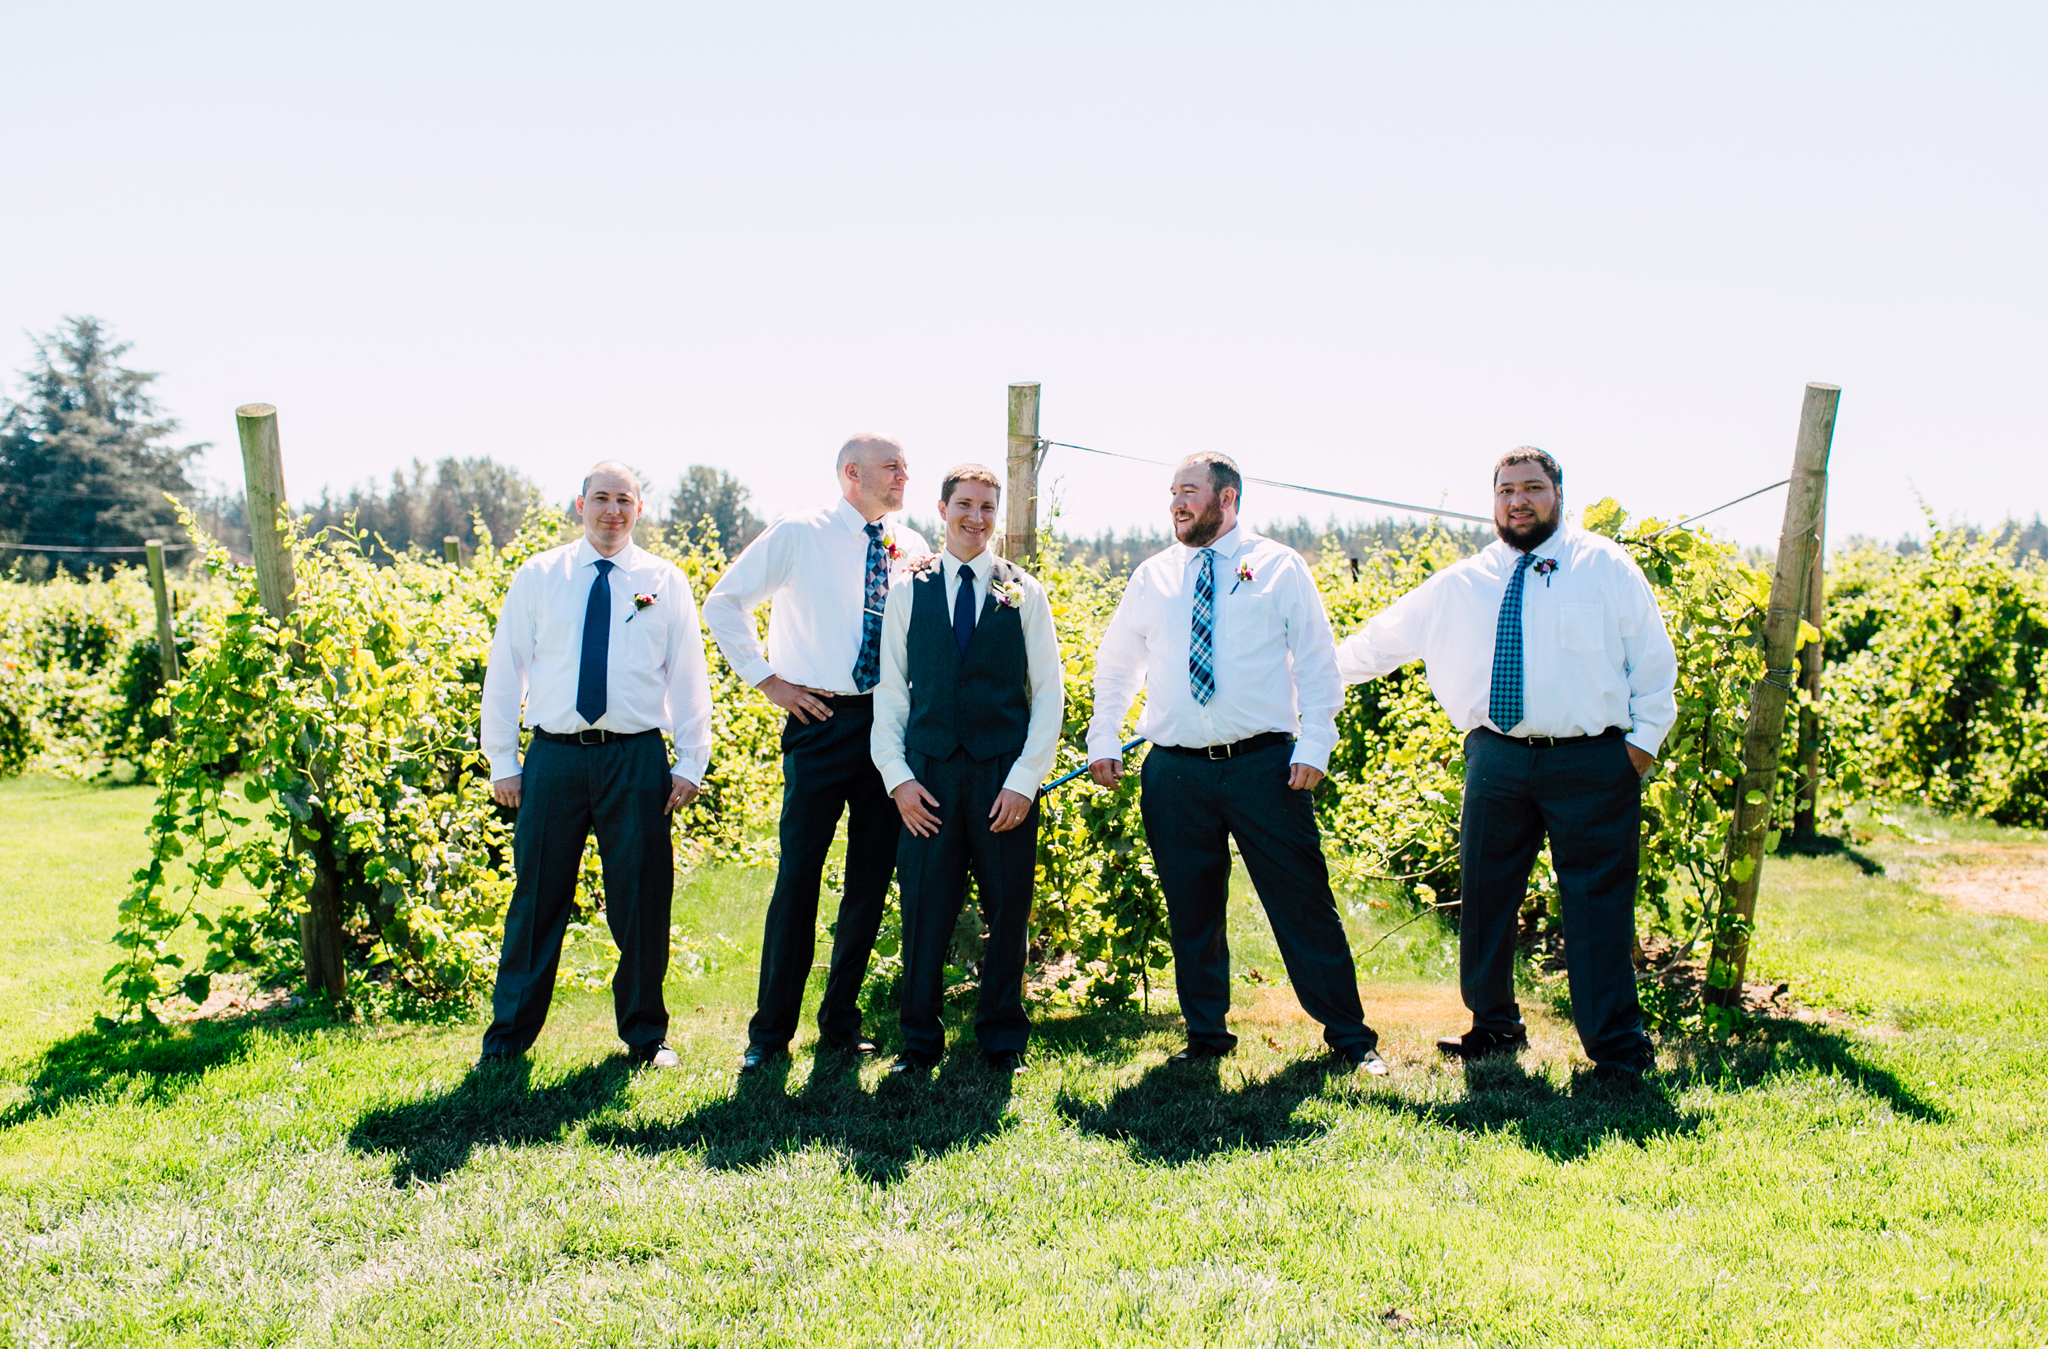 035-bellingham-wedding-photographer-samson-winery-katheryn-moran.jpg